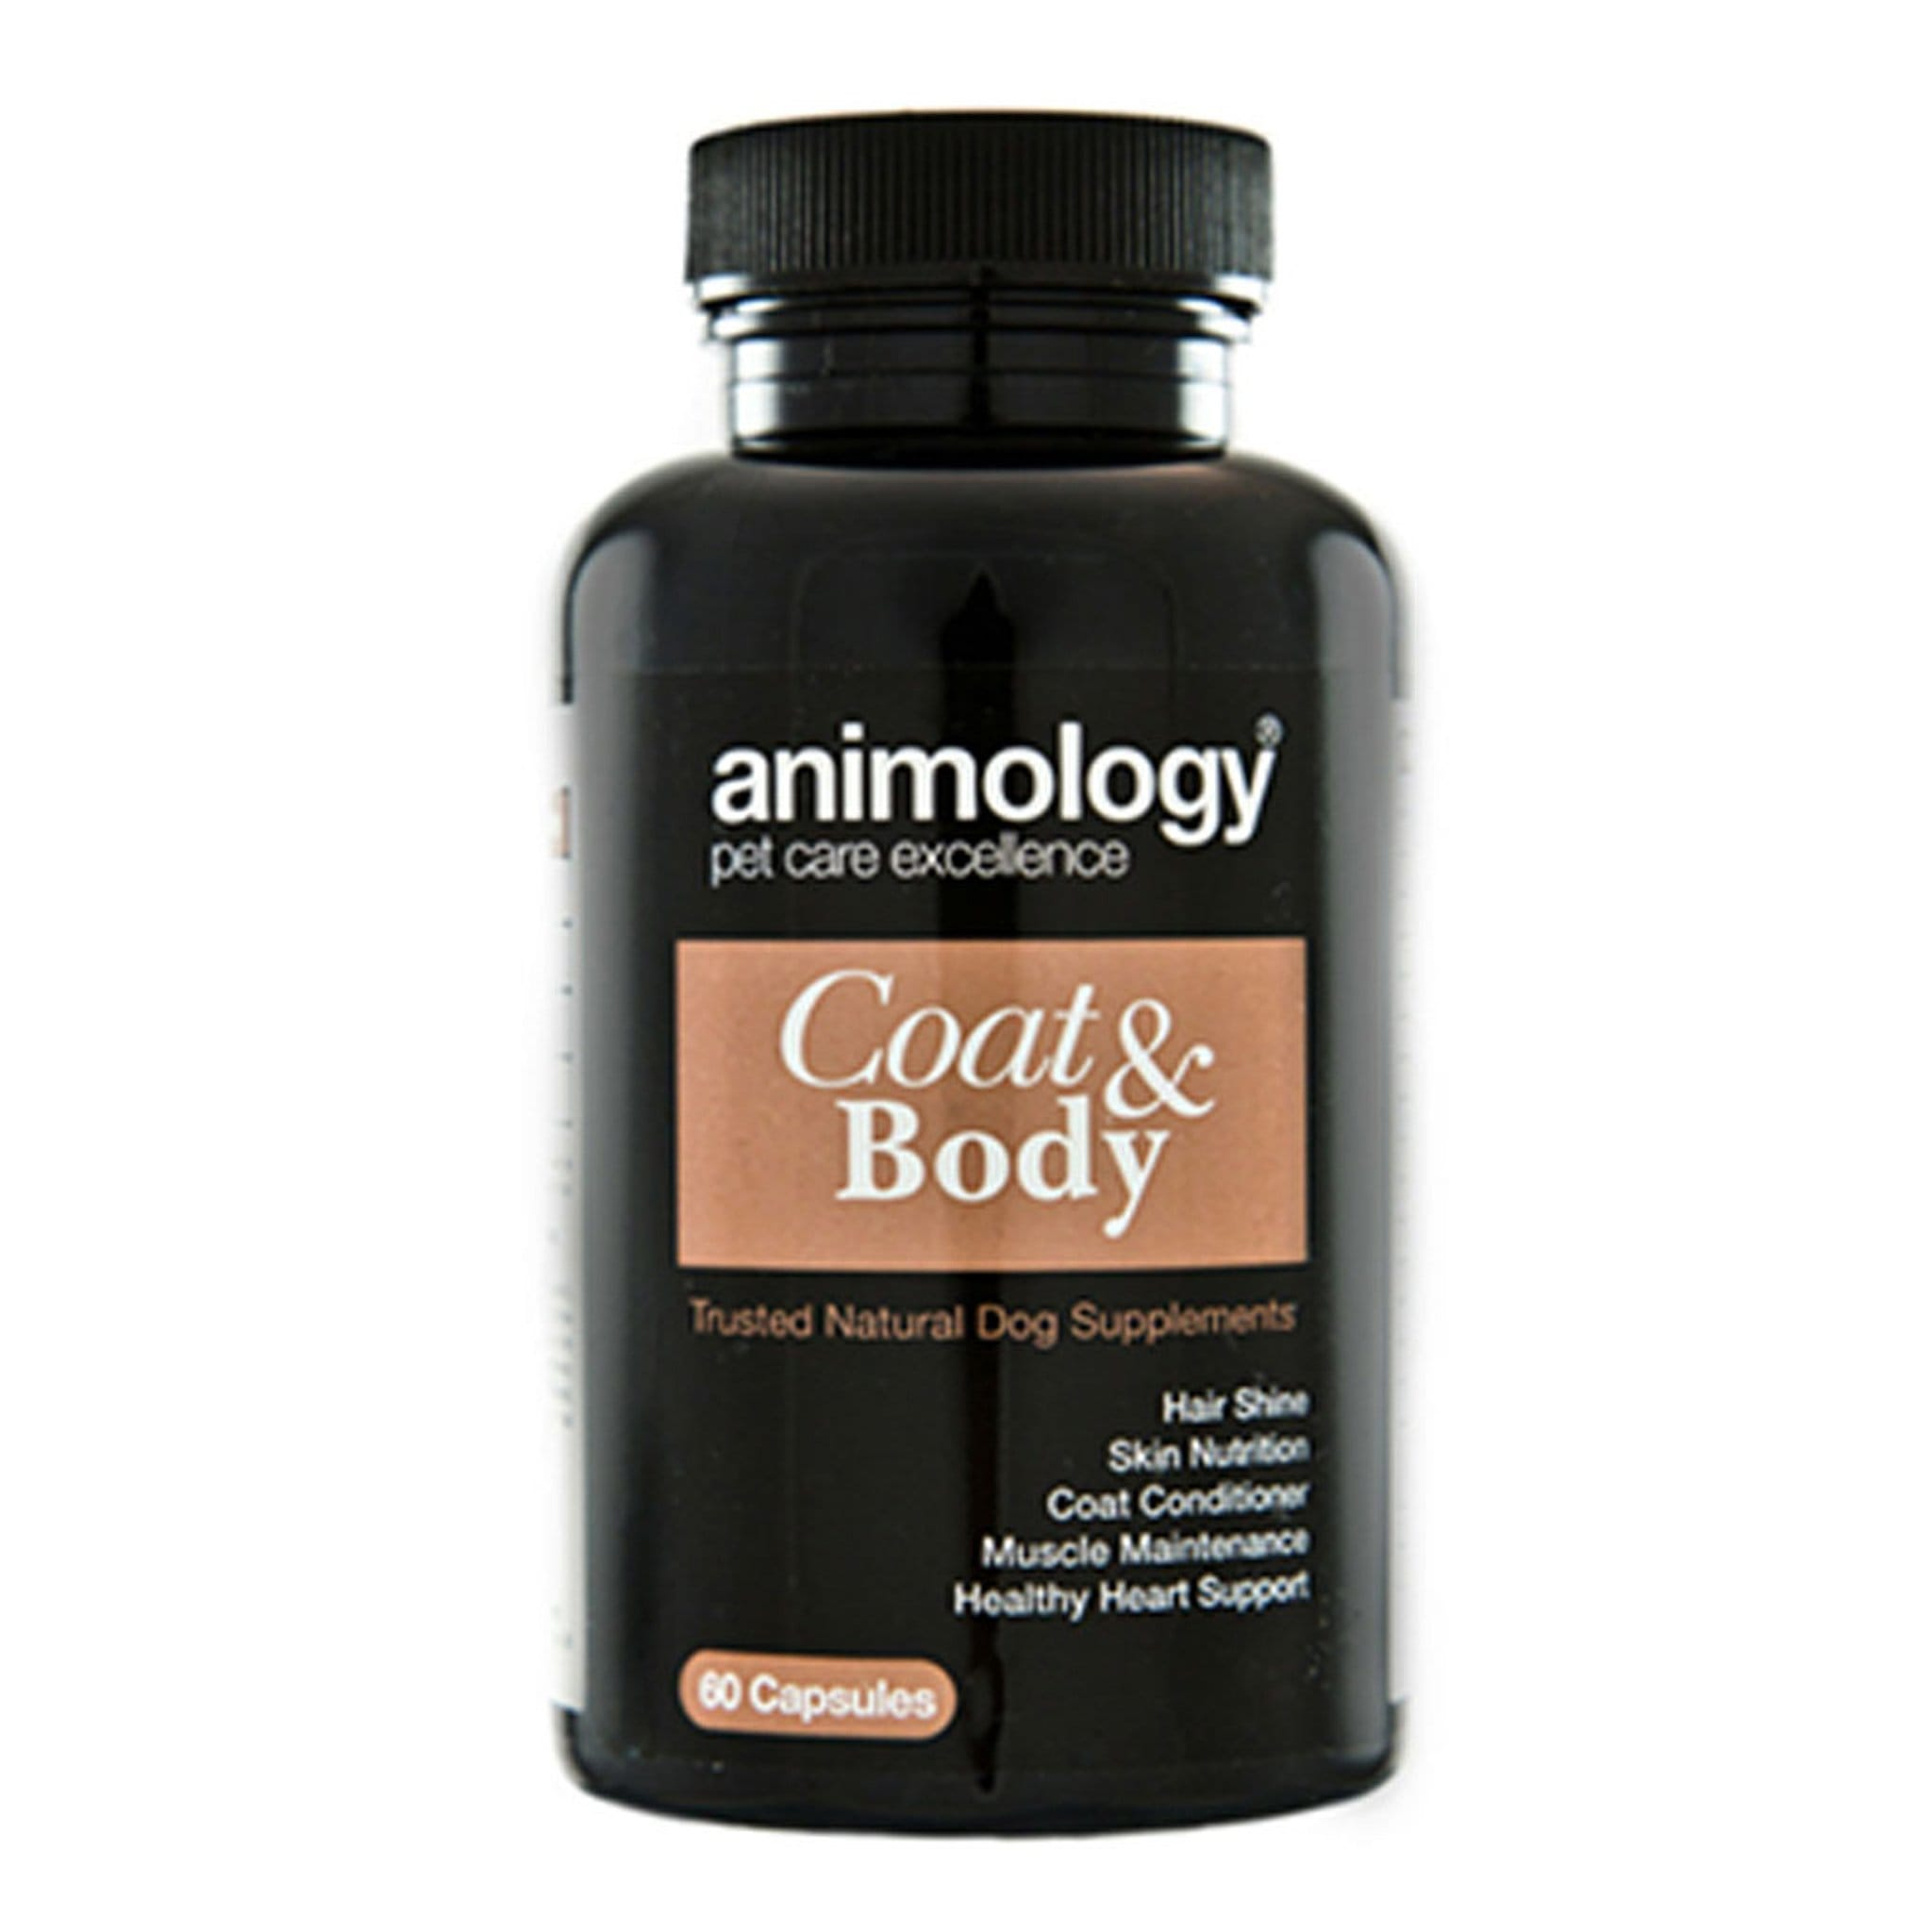 Animology Coat & Body Dog Supplement 17118 60 Capsules